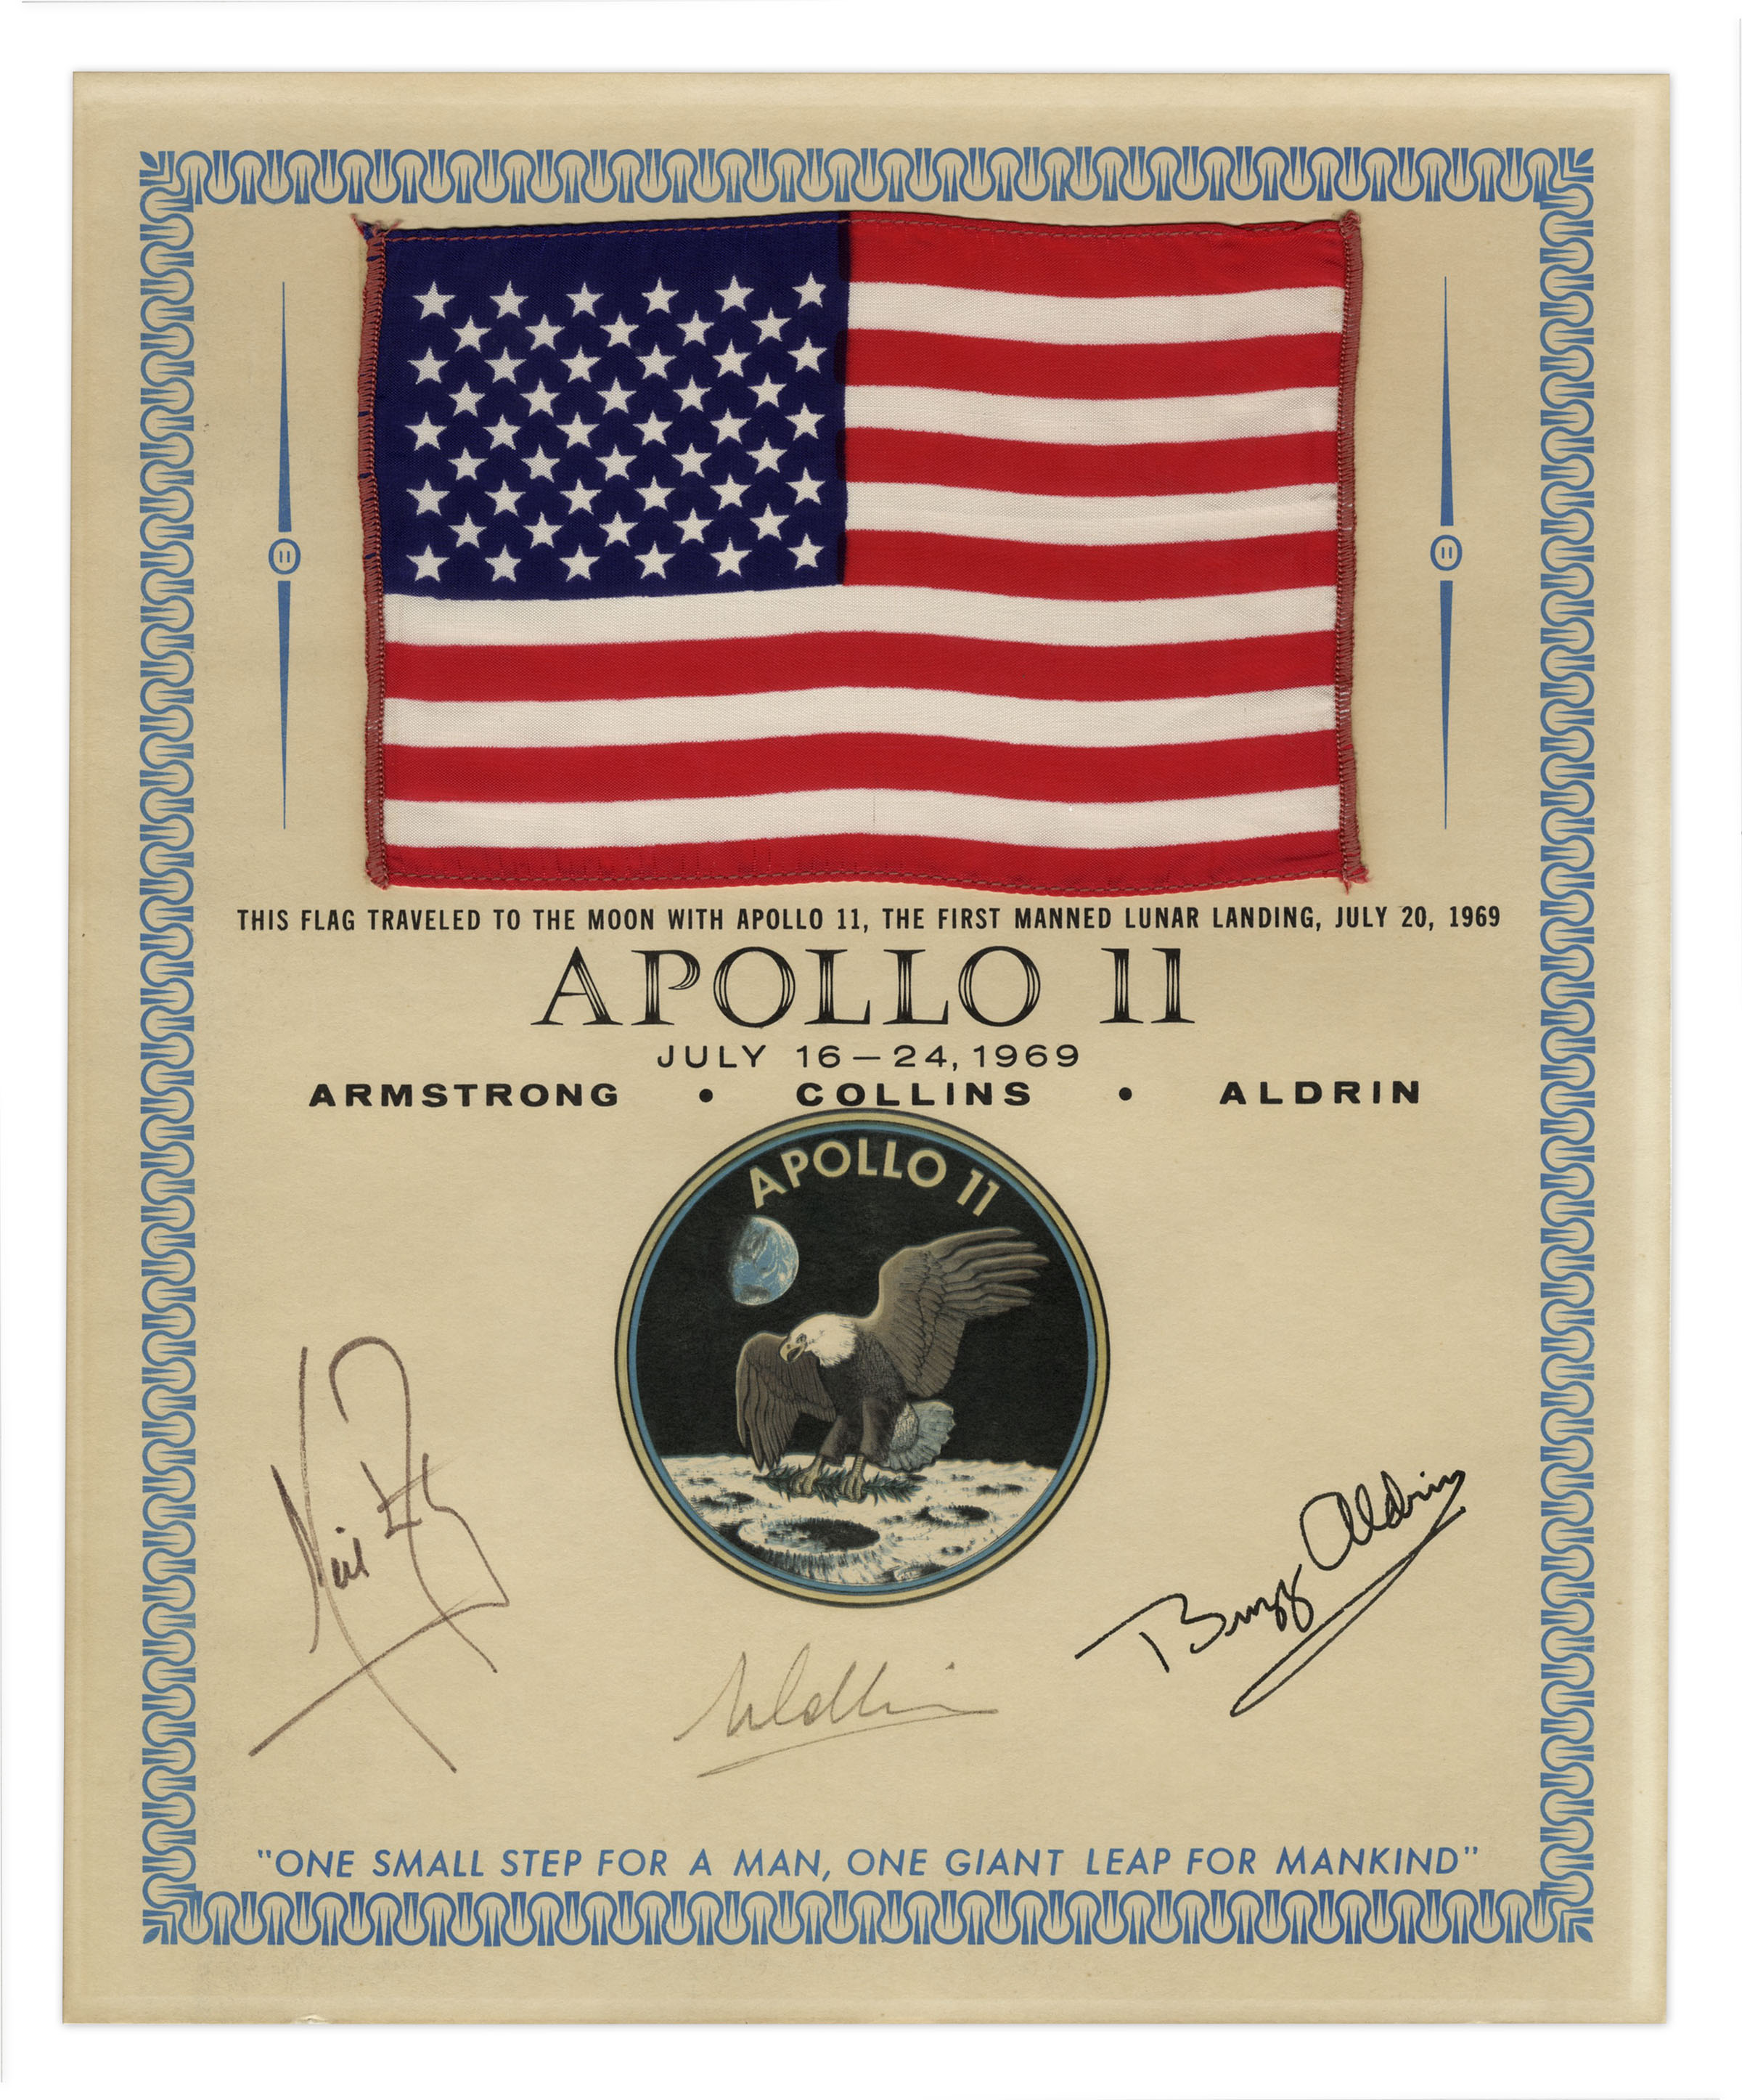 Exceptionally Scarce Apollo 11 Flag Flown to the Moon -- Signed by Armstrong, Aldrin & Collins